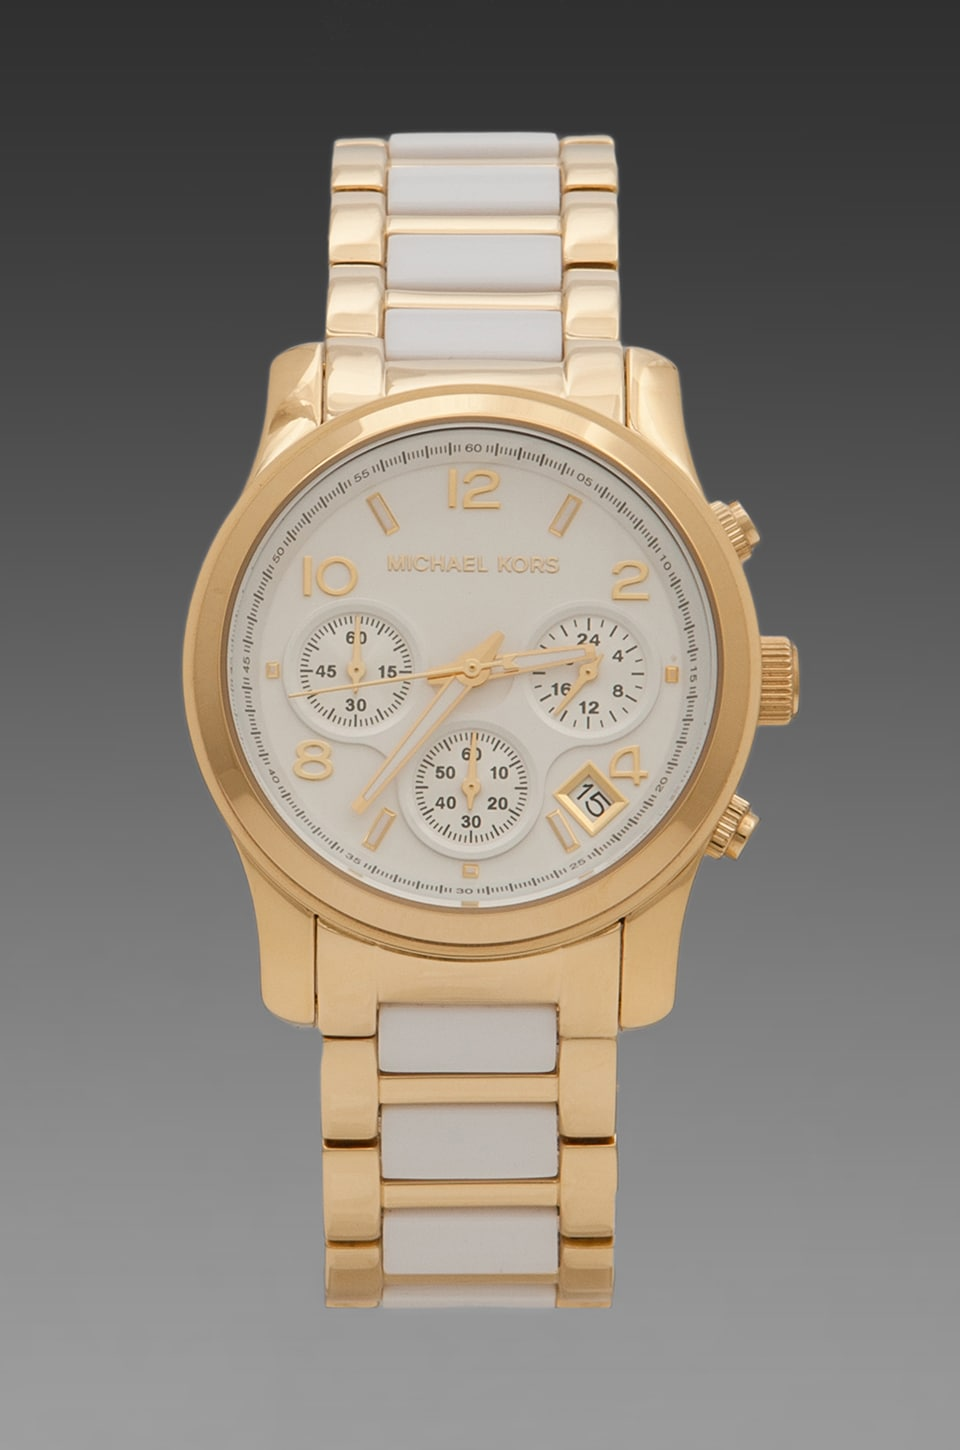 Michael Kors Runway Chronograph in White/Gold